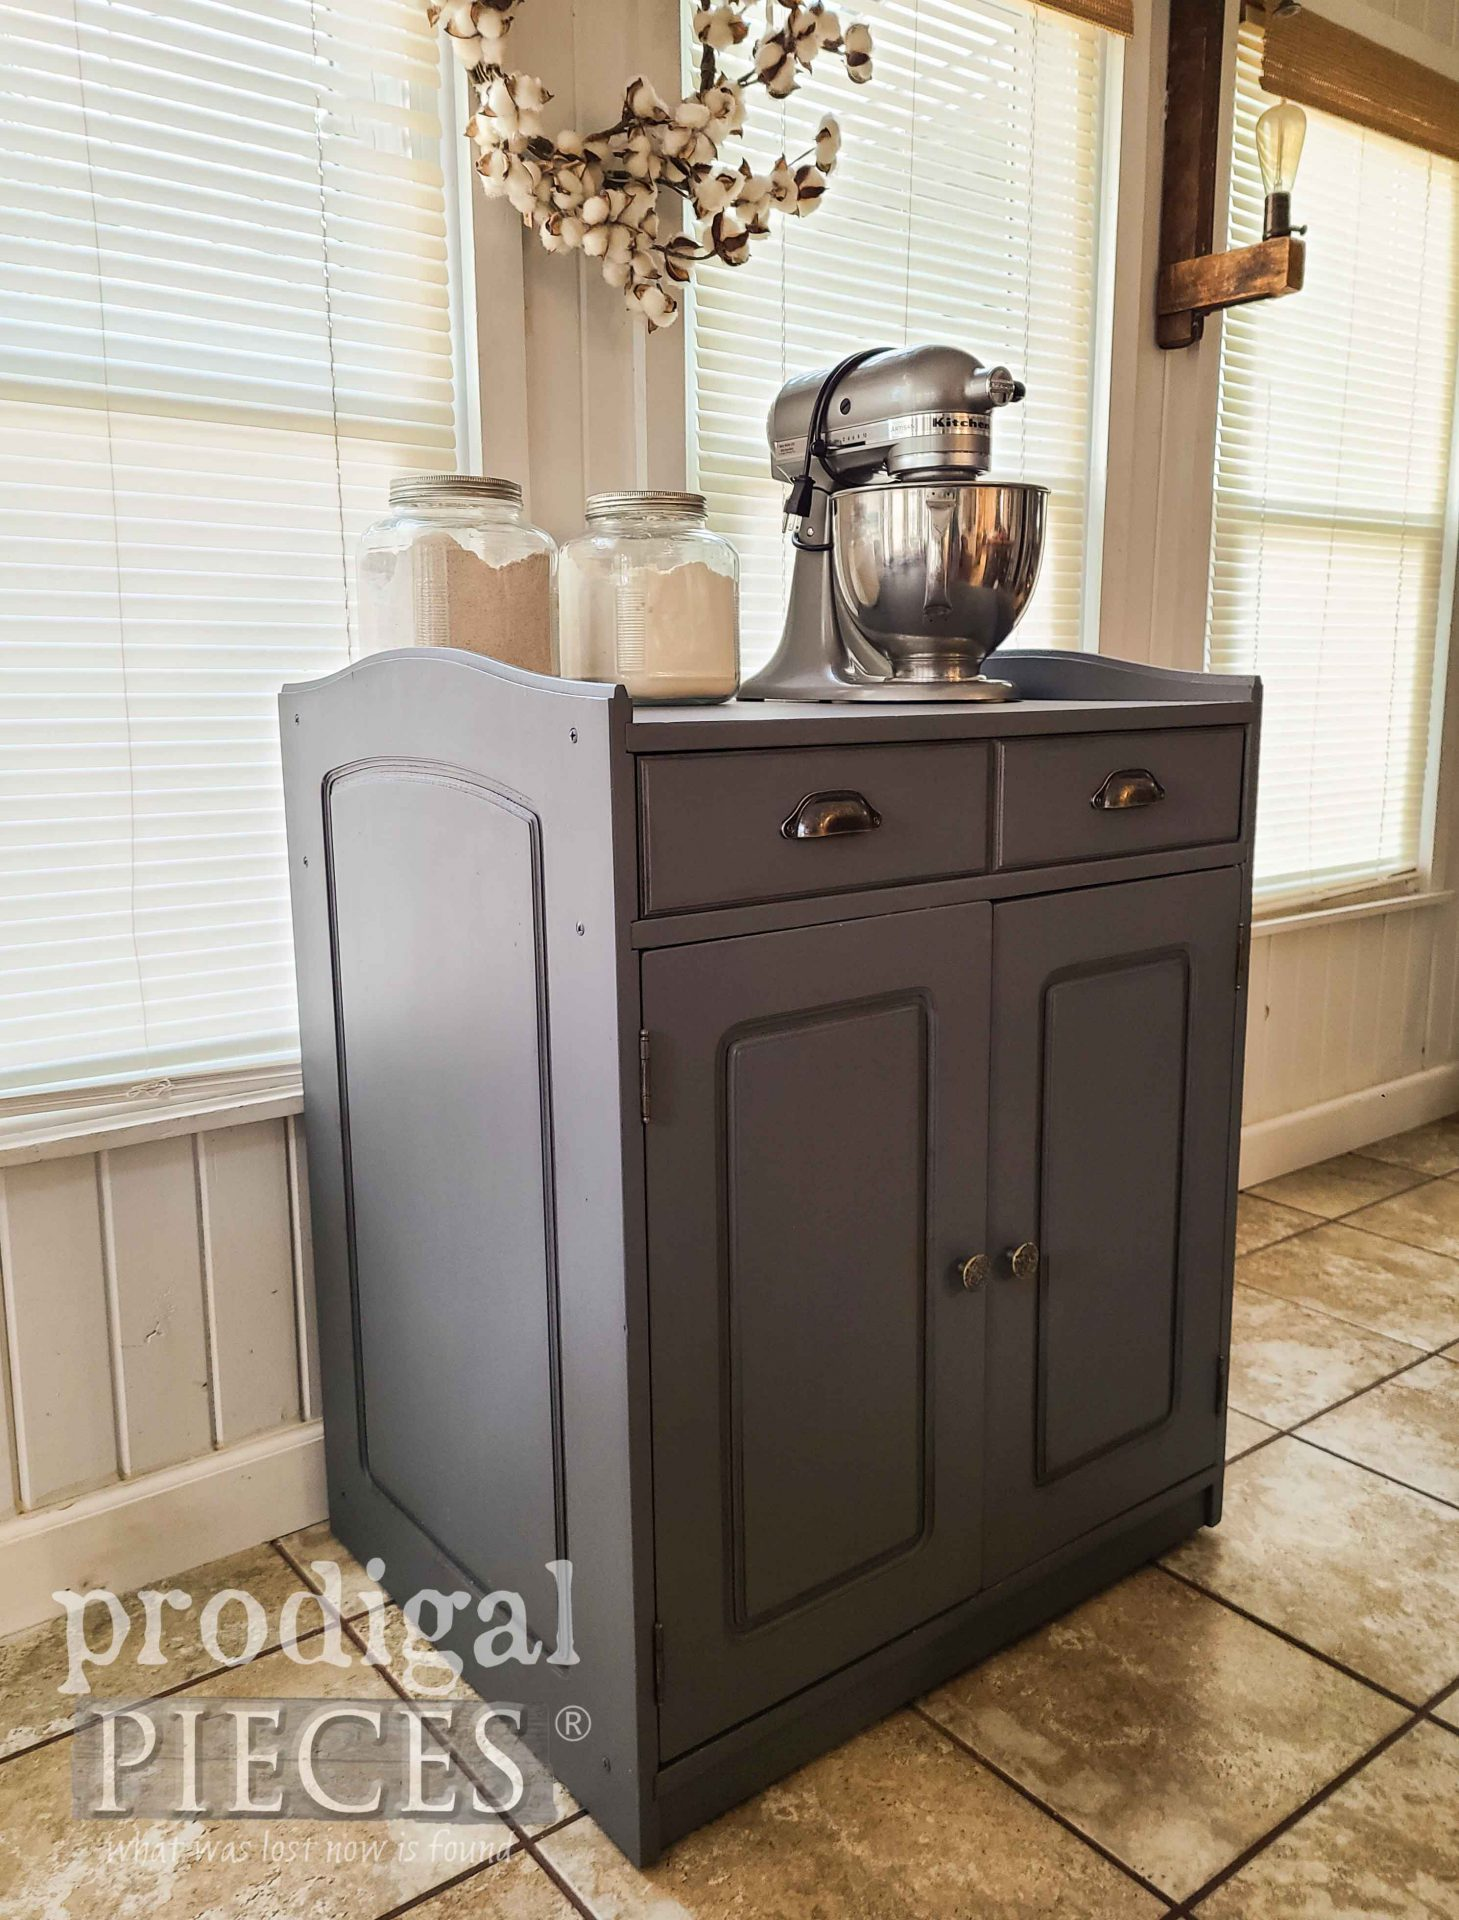 Farmhouse Gray Baking Cabinet with Portability and Cutting Board by Prodigal Pieces | prodigalpieces.com #prodigalpieces #farmhouse #kitchen #storage #diy